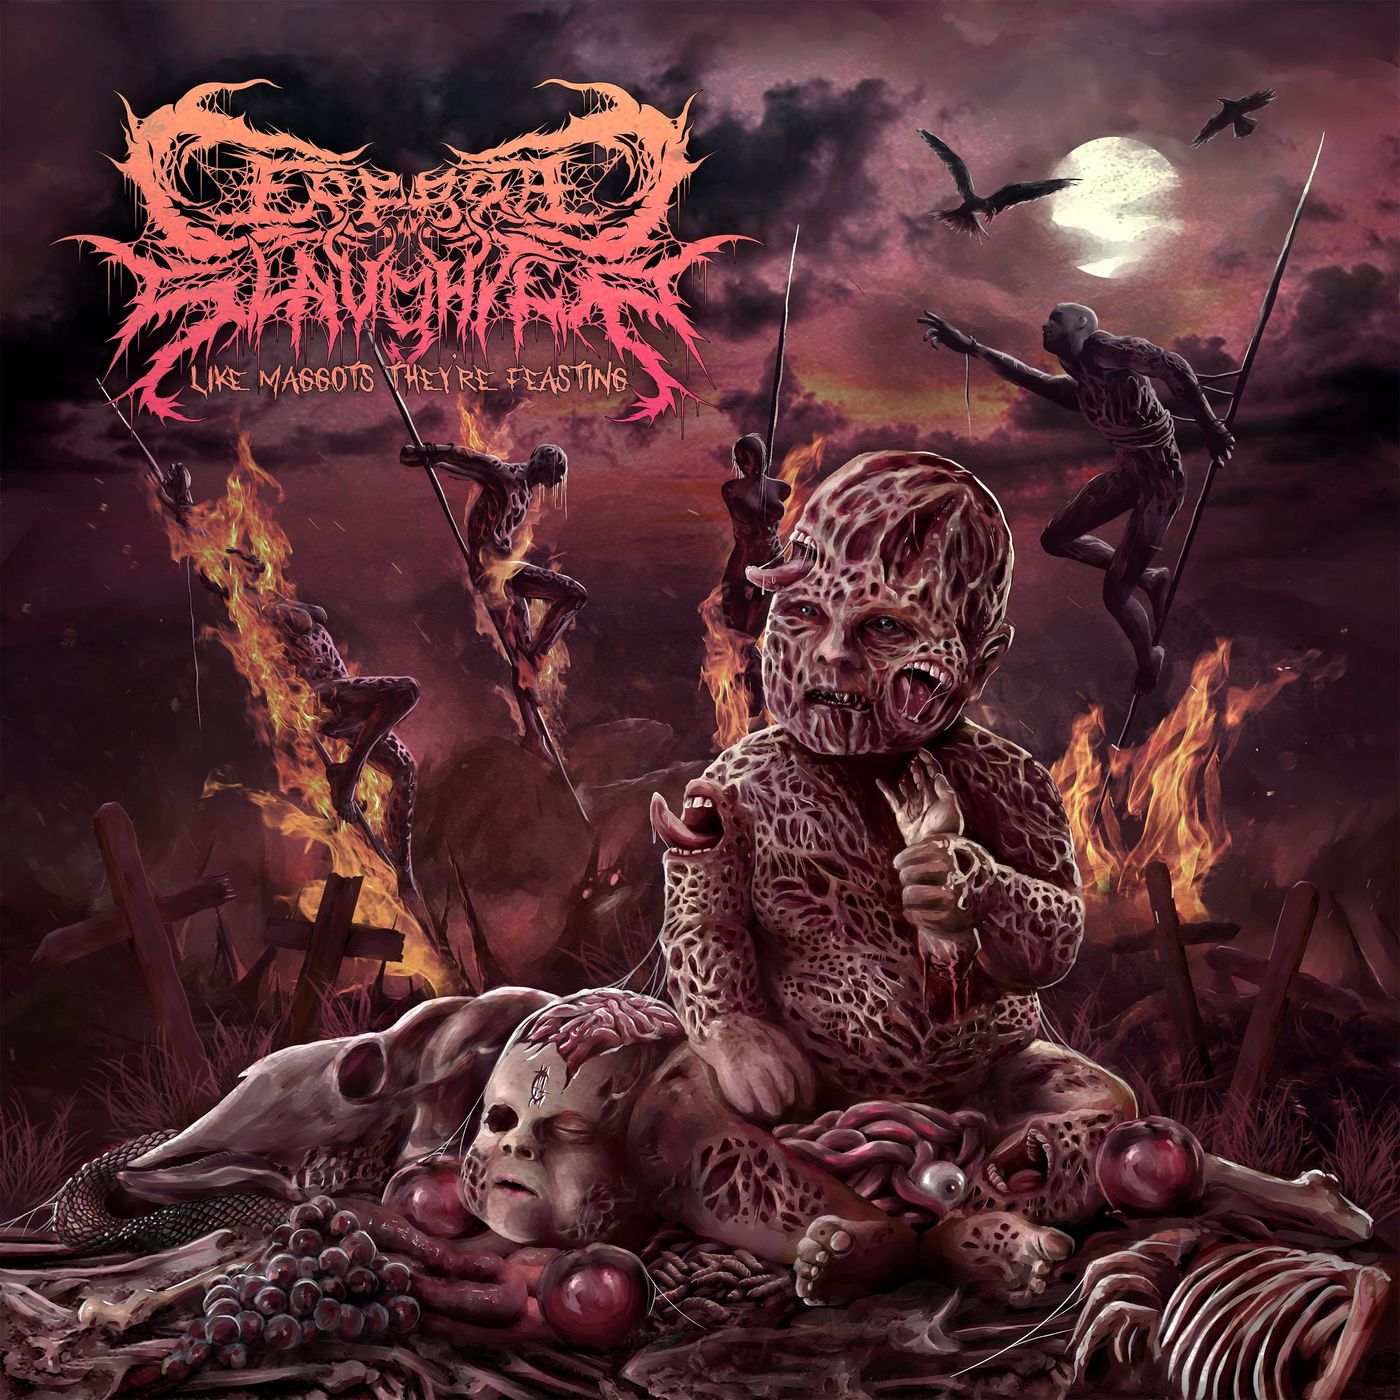 Cerebral Slaughter - Like Maggots They're Feasting [single] (2021)